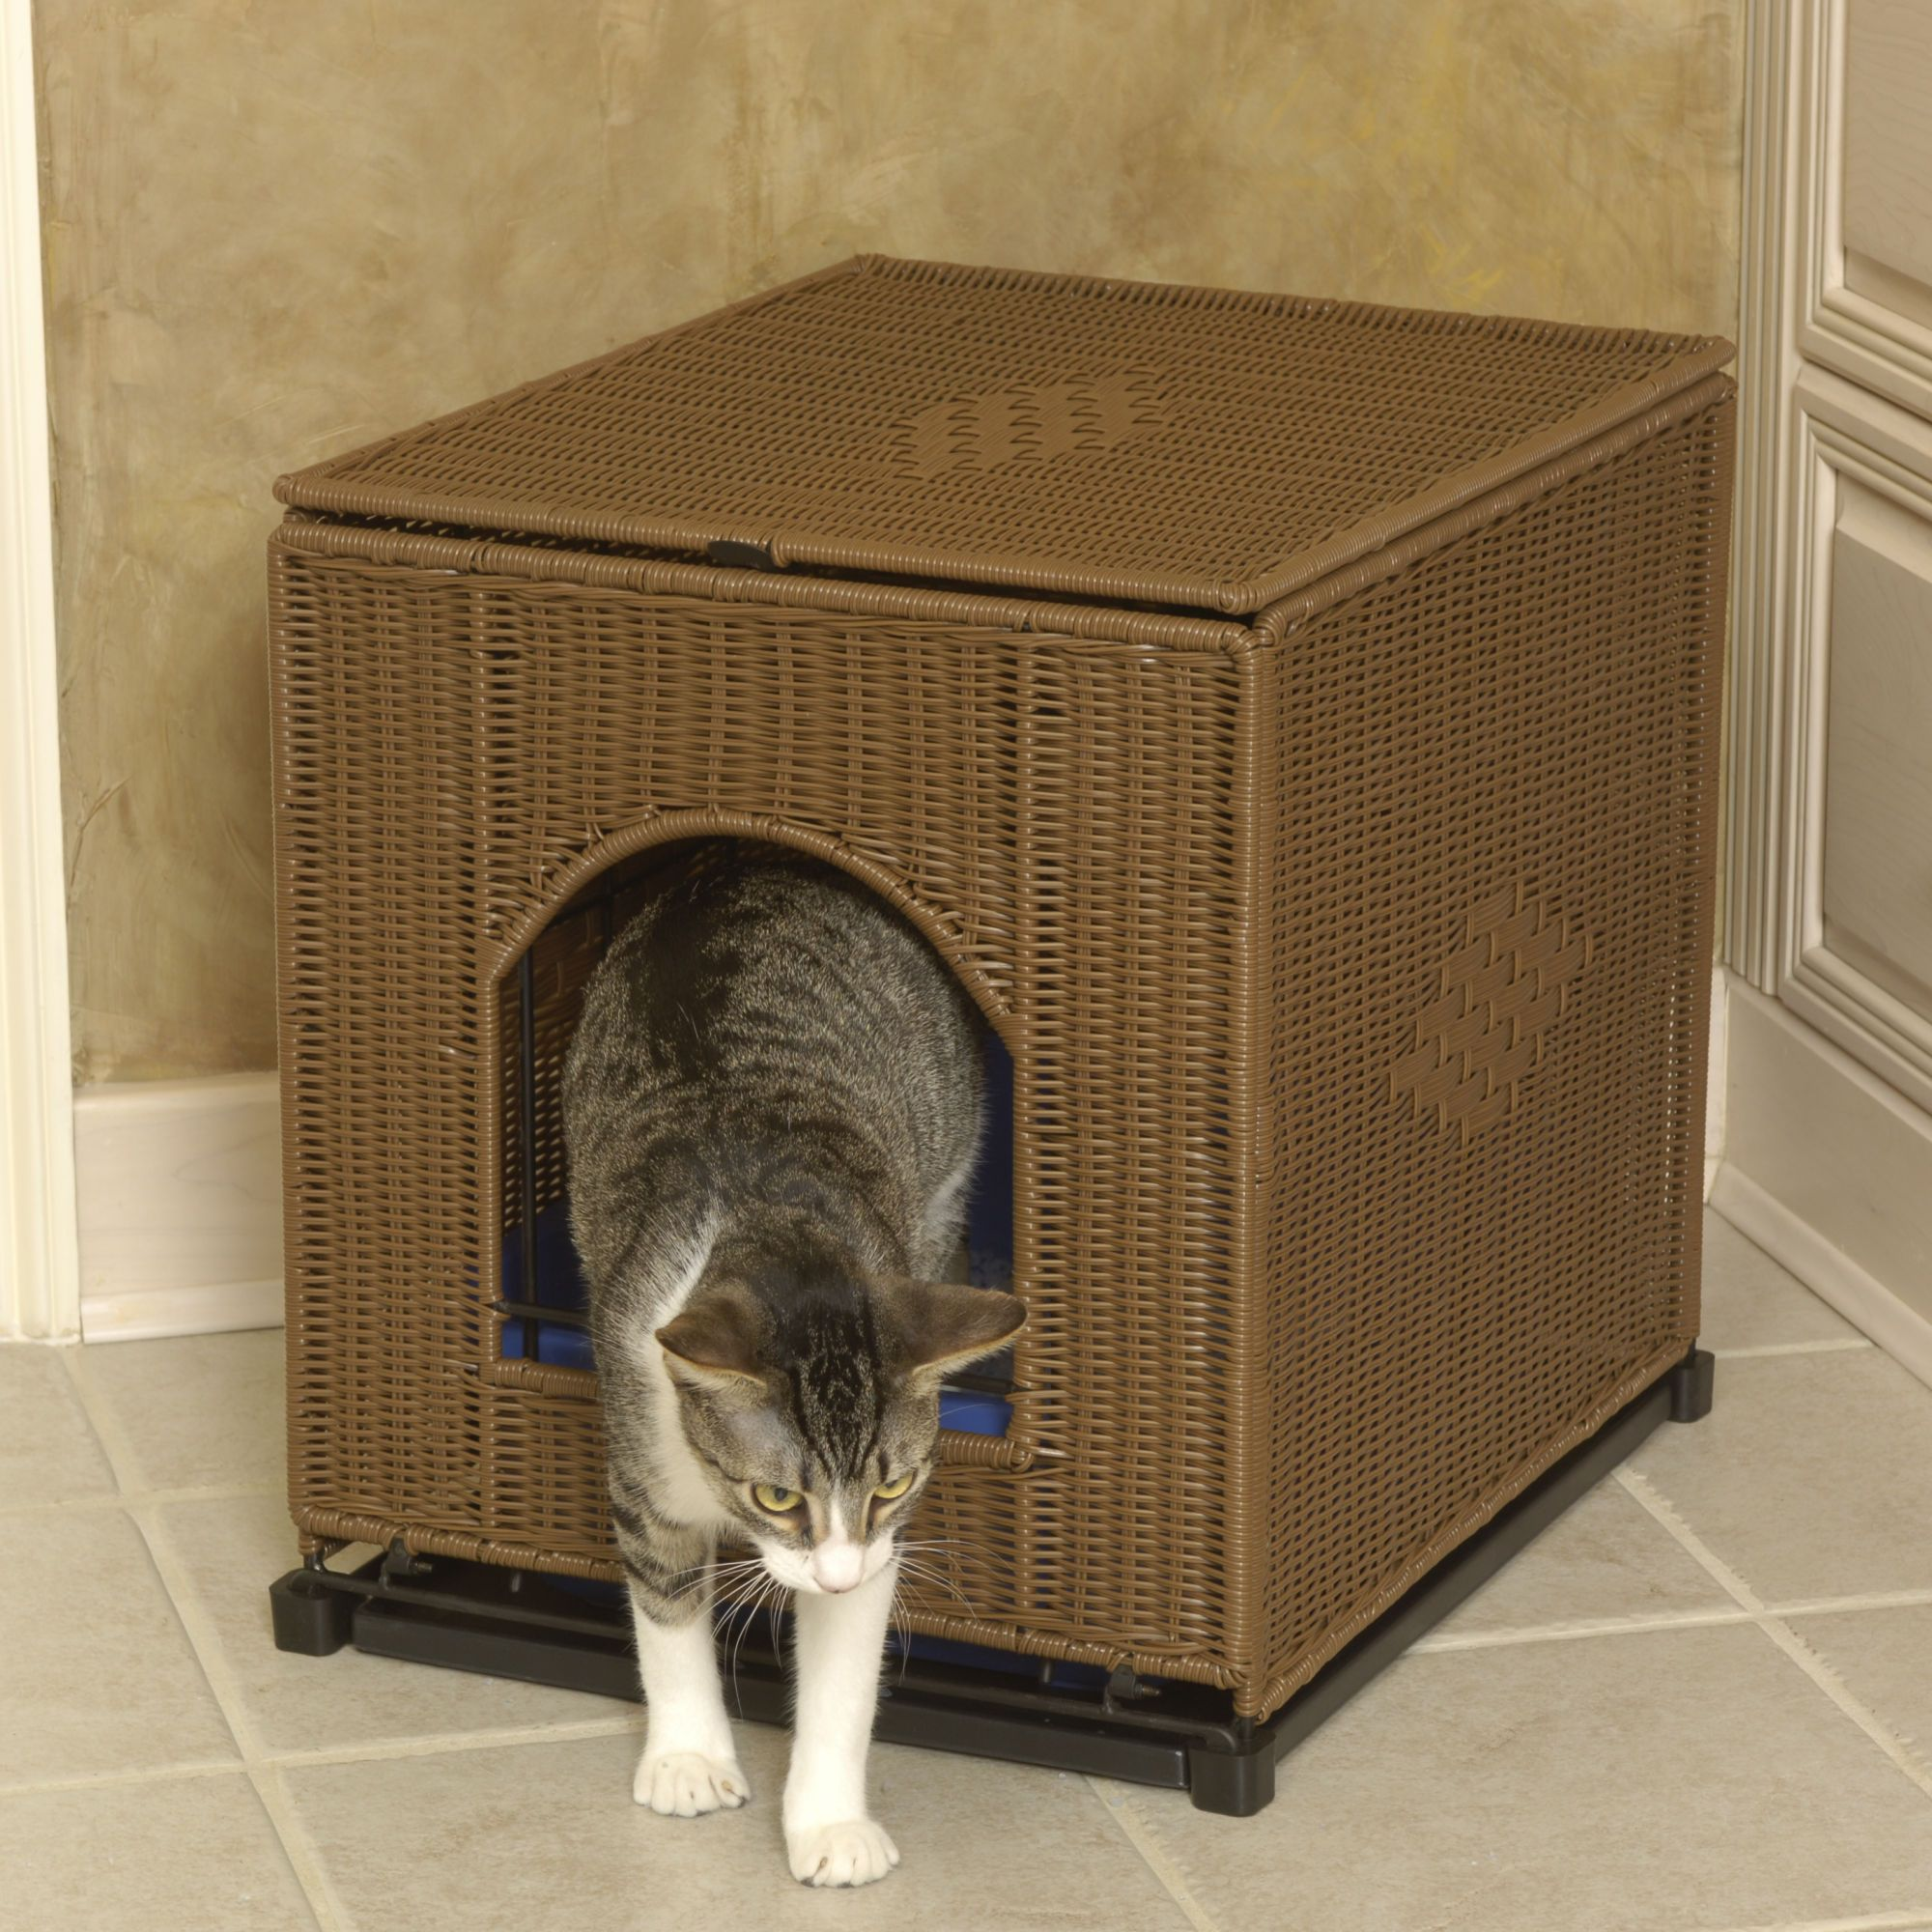 Decorative Litter Box Covers Mrherzher's Litter Box Cover  For The Love Of Cats  Pinterest